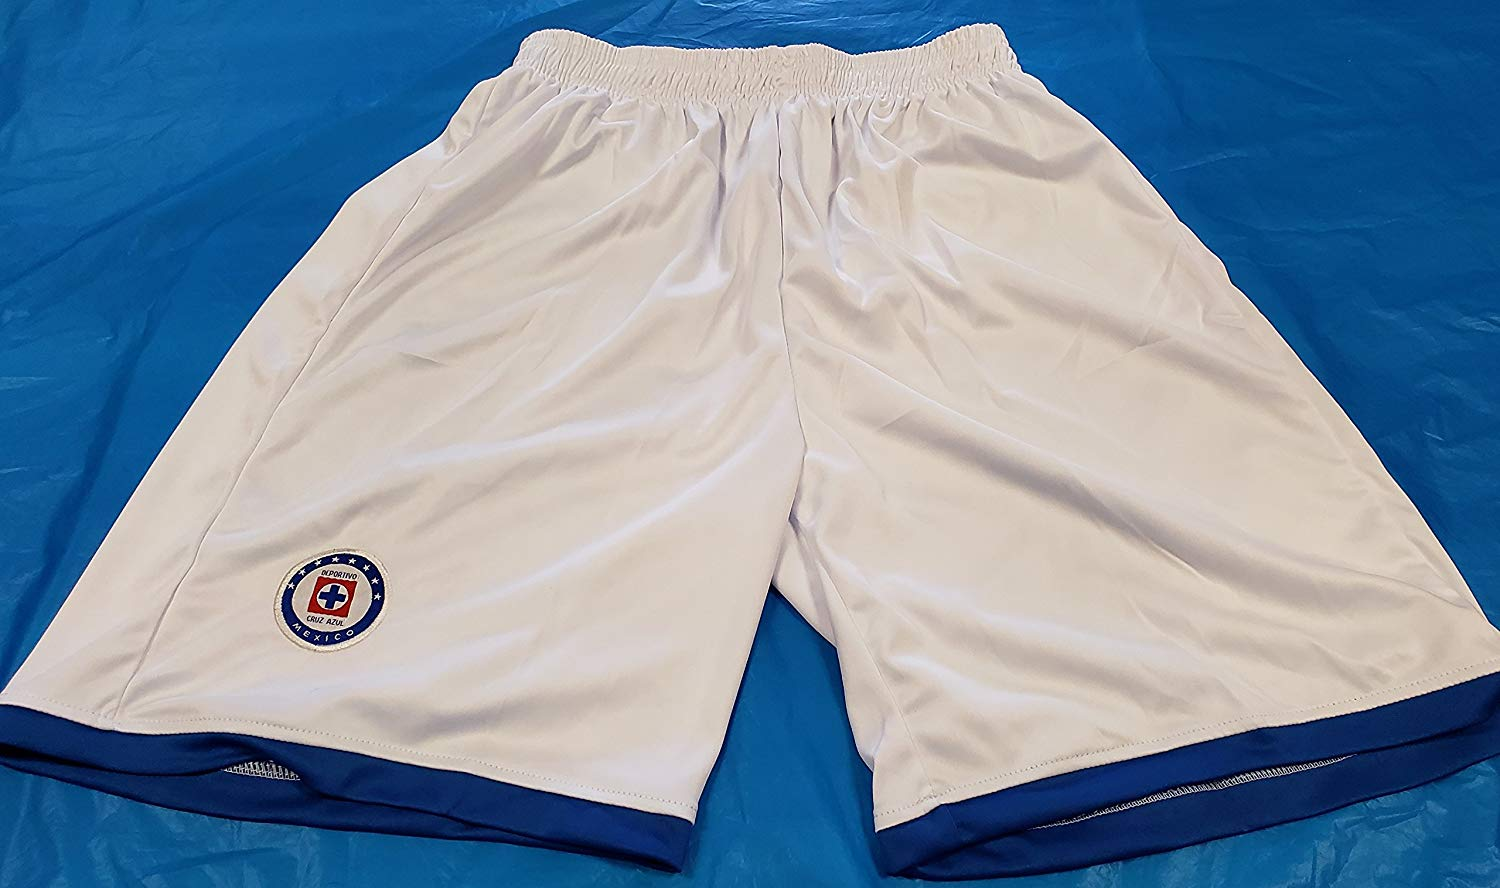 6894443b181 Get Quotations · New! La Maquina de Cruz Azul embroidered Short Size Small